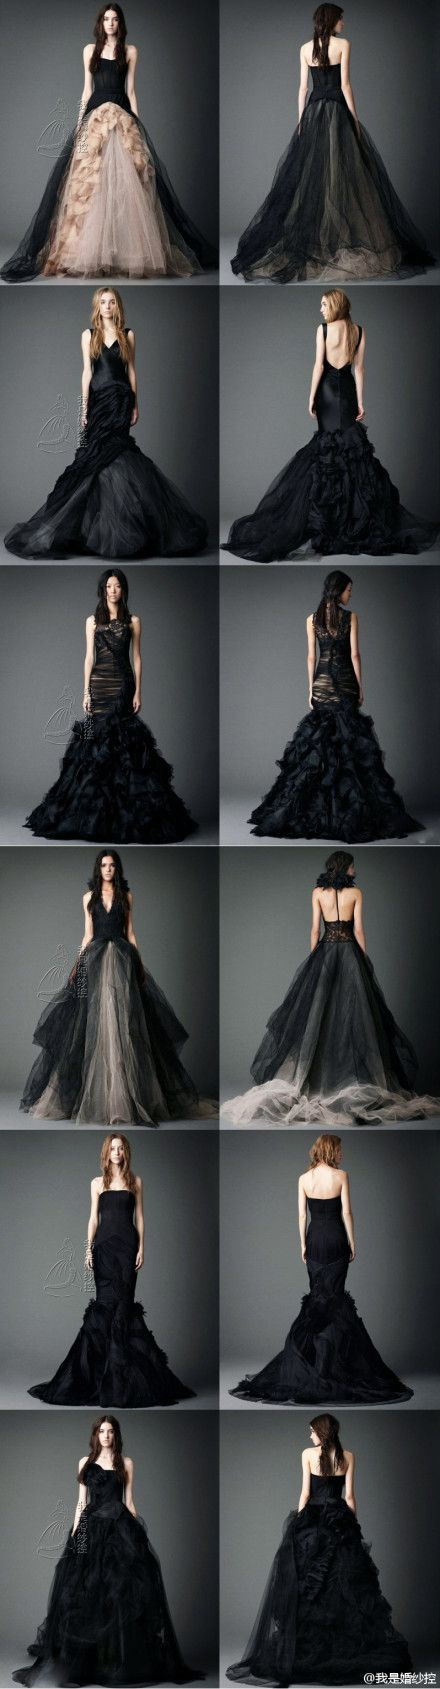 Black wedding dress collection by Vera Wang #wedding #gown